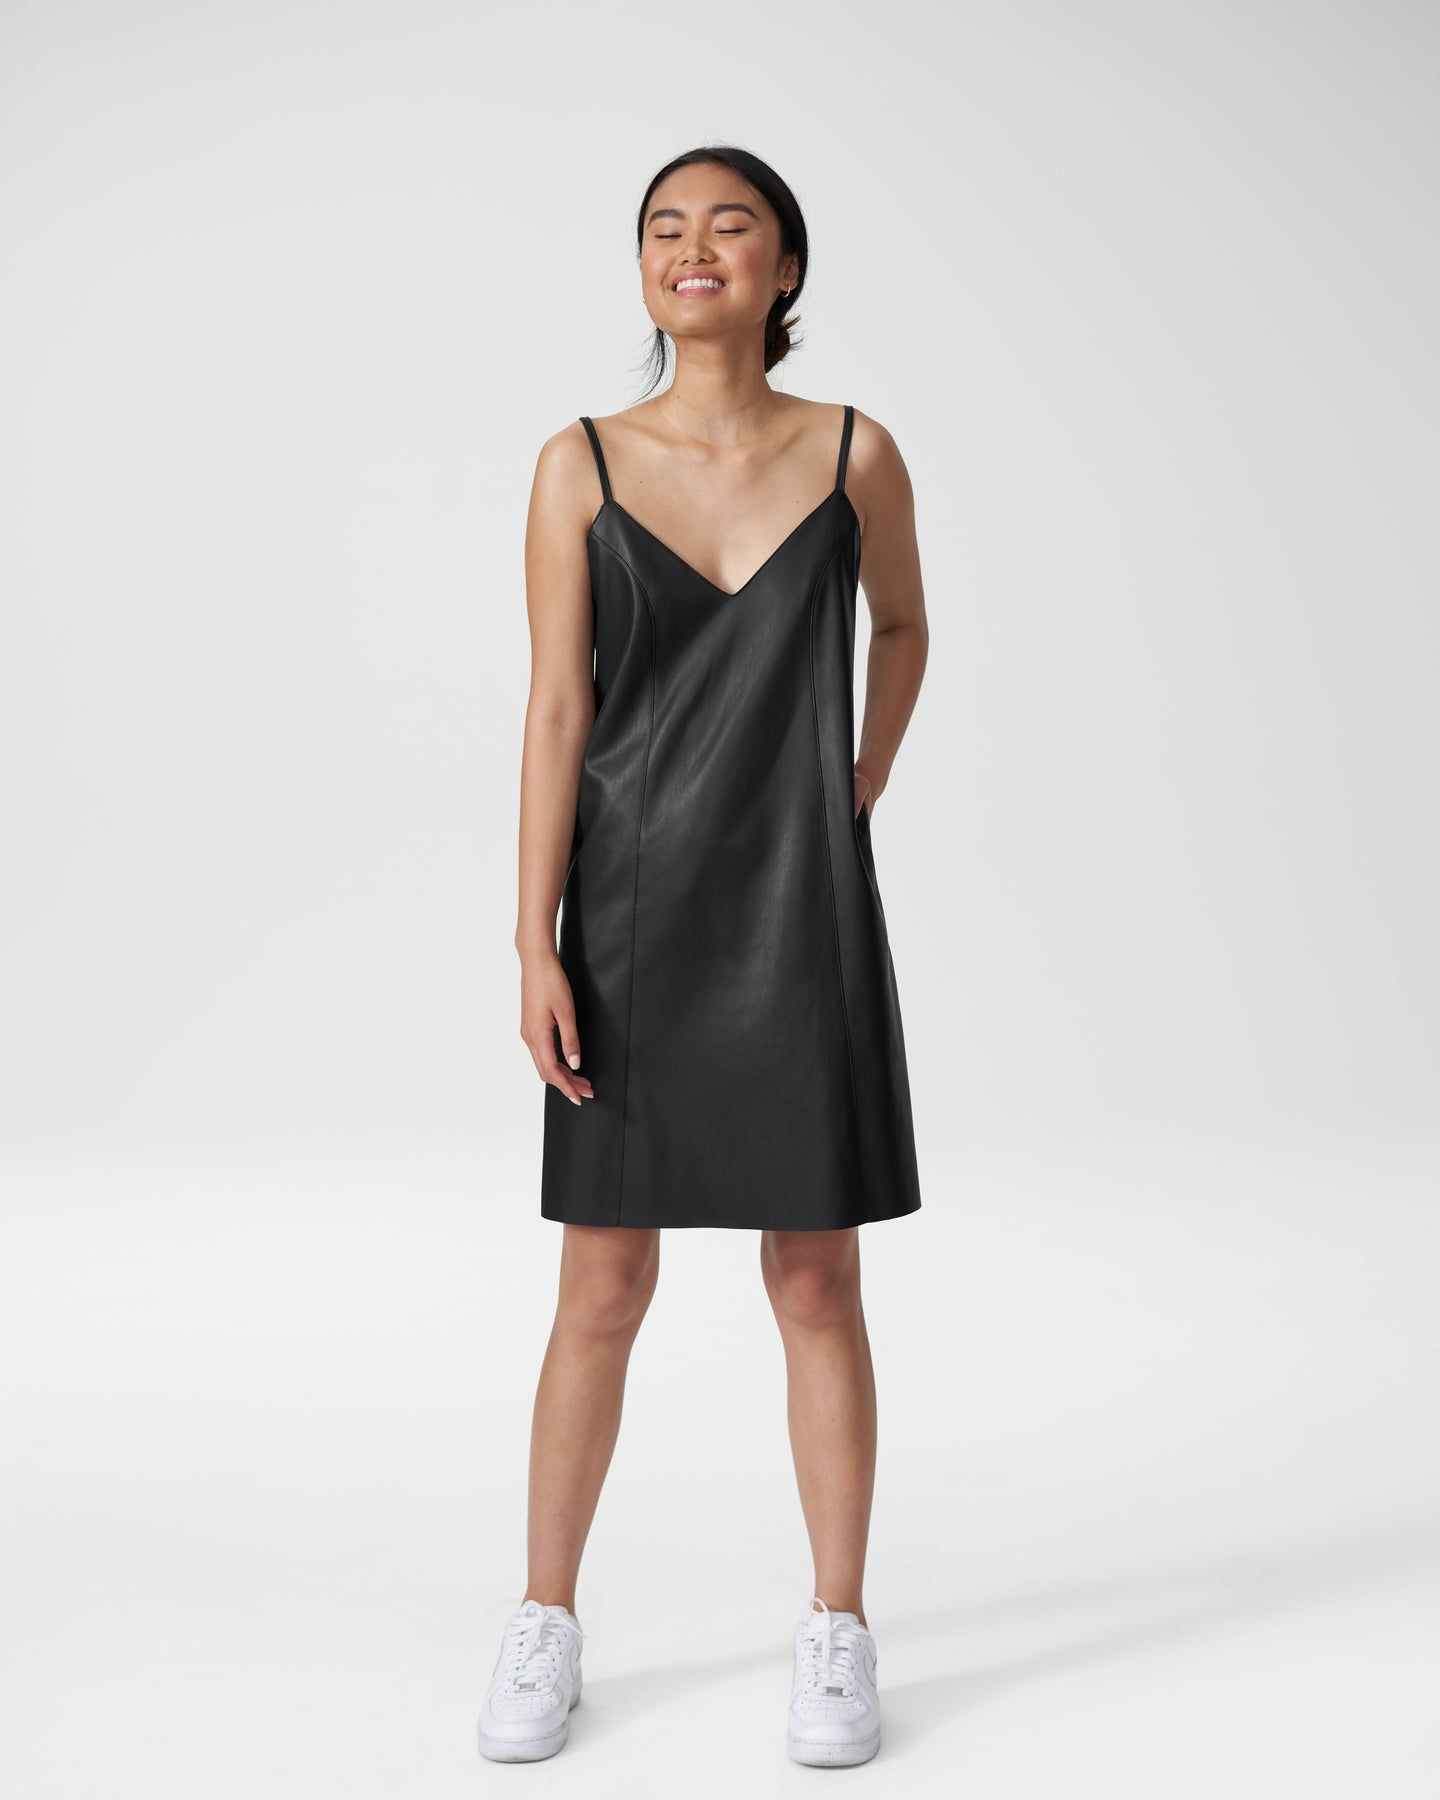 Hen Vegan Leather Slip Dress - Black - image 0